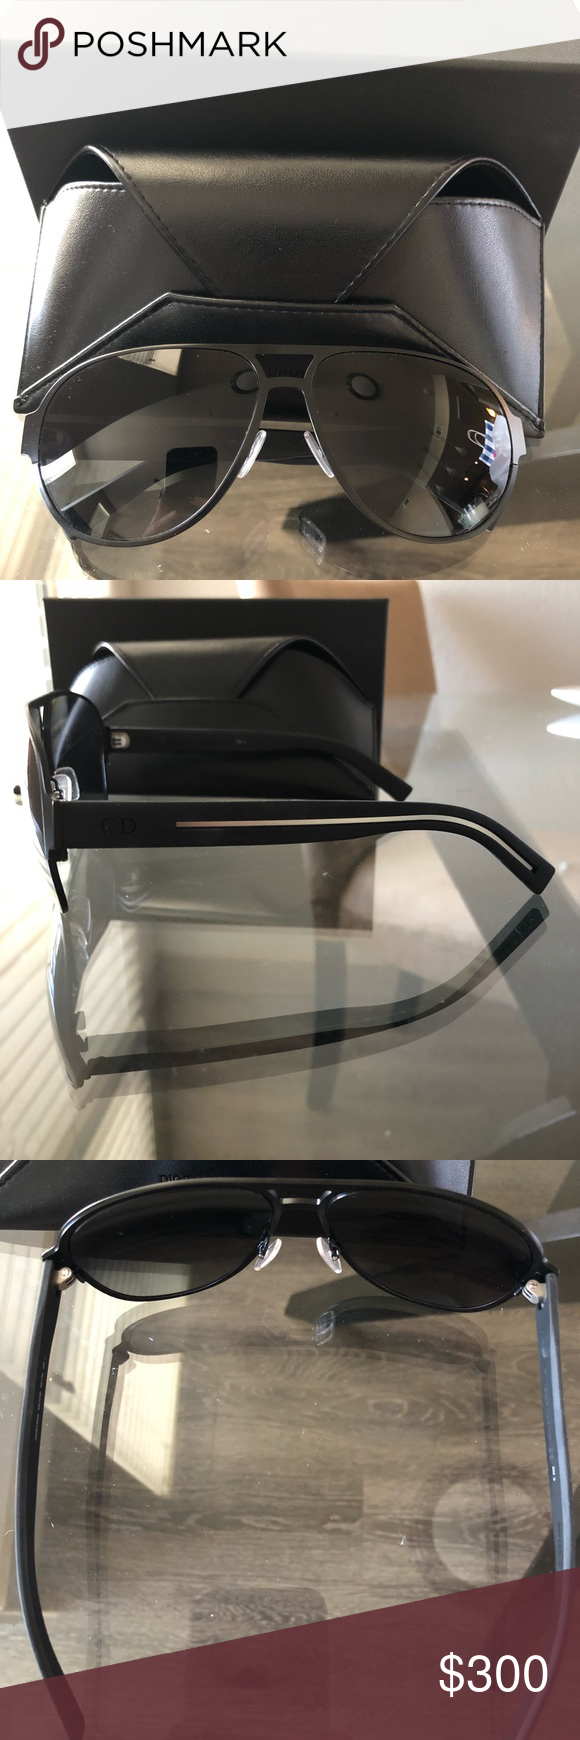 43f717fc7a73 Dior Homme Sunglasses Brand new with box